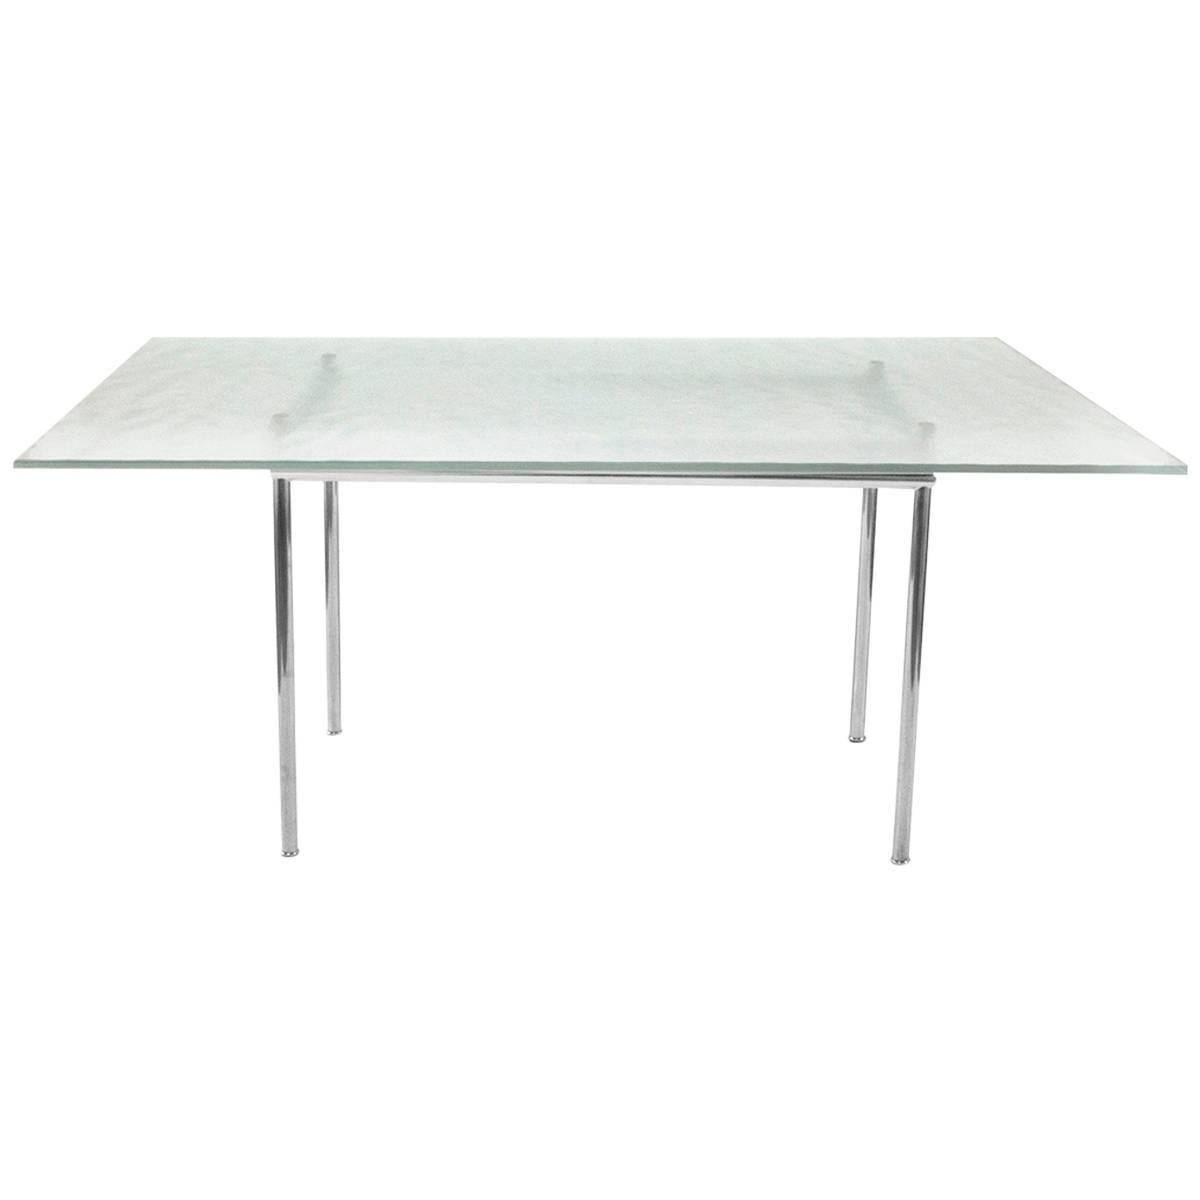 cassina glass top lc12 dining table by le corbusier. Black Bedroom Furniture Sets. Home Design Ideas